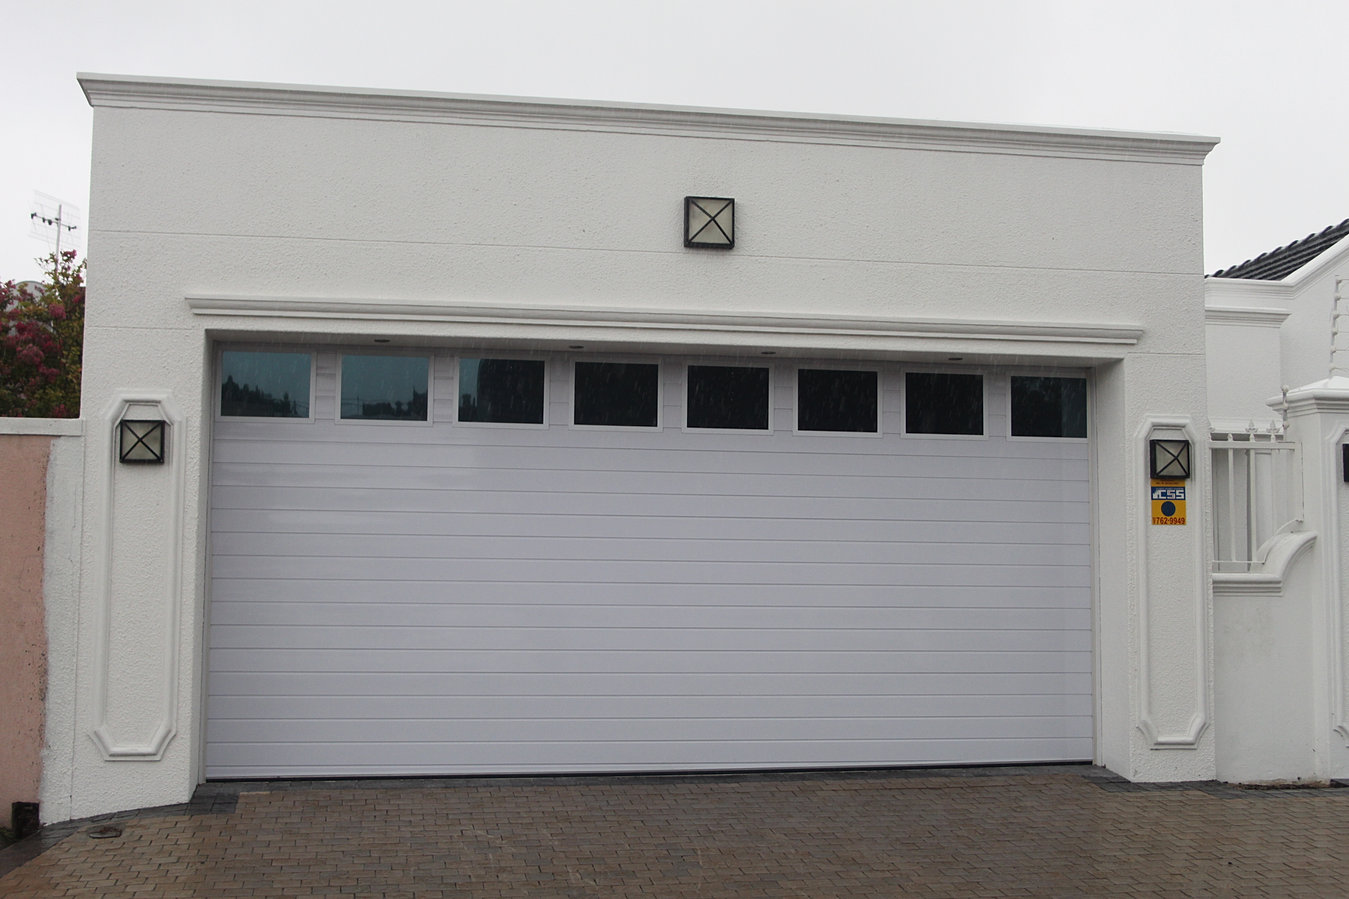 899 #405057 DOORMATIC Garage Doors And Automations In Cape Town And Surrounds save image Ab Garage Doors 36471349